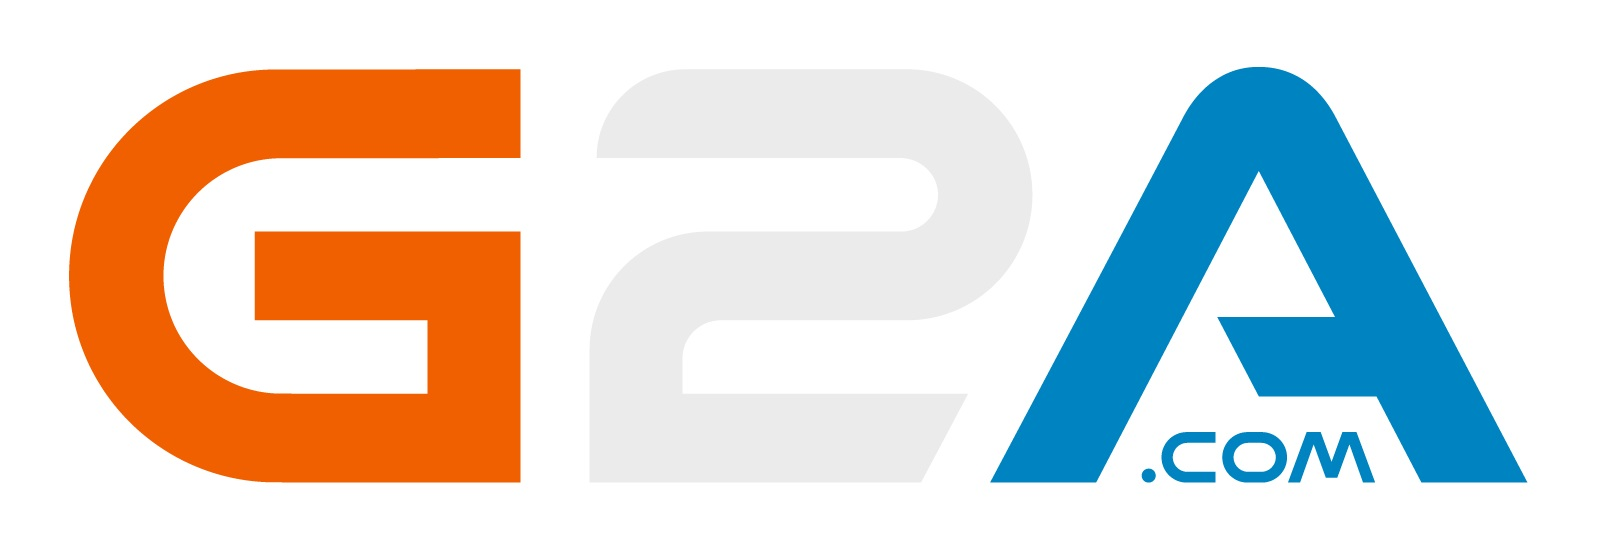 G2A Will Now charge Your Account for Being Inactive